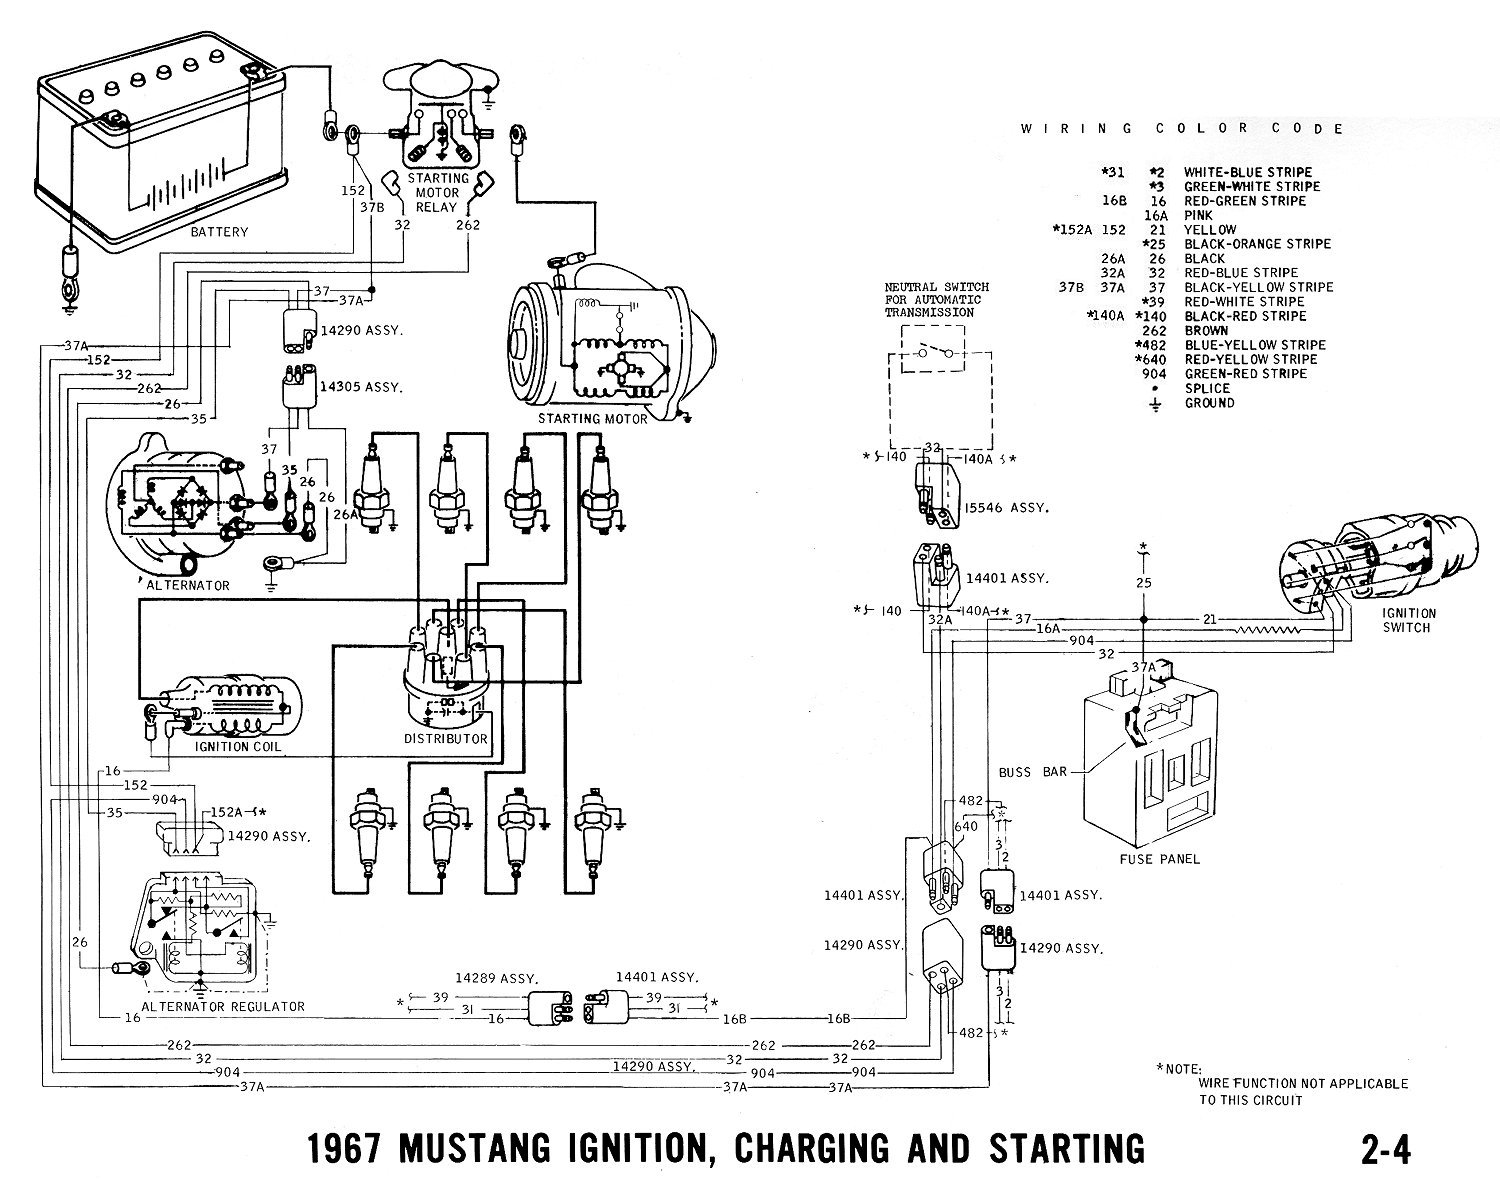 76b80 67 Ford Mustang No Power Red Green Wire Solenoid on international truck fuse panel diagram